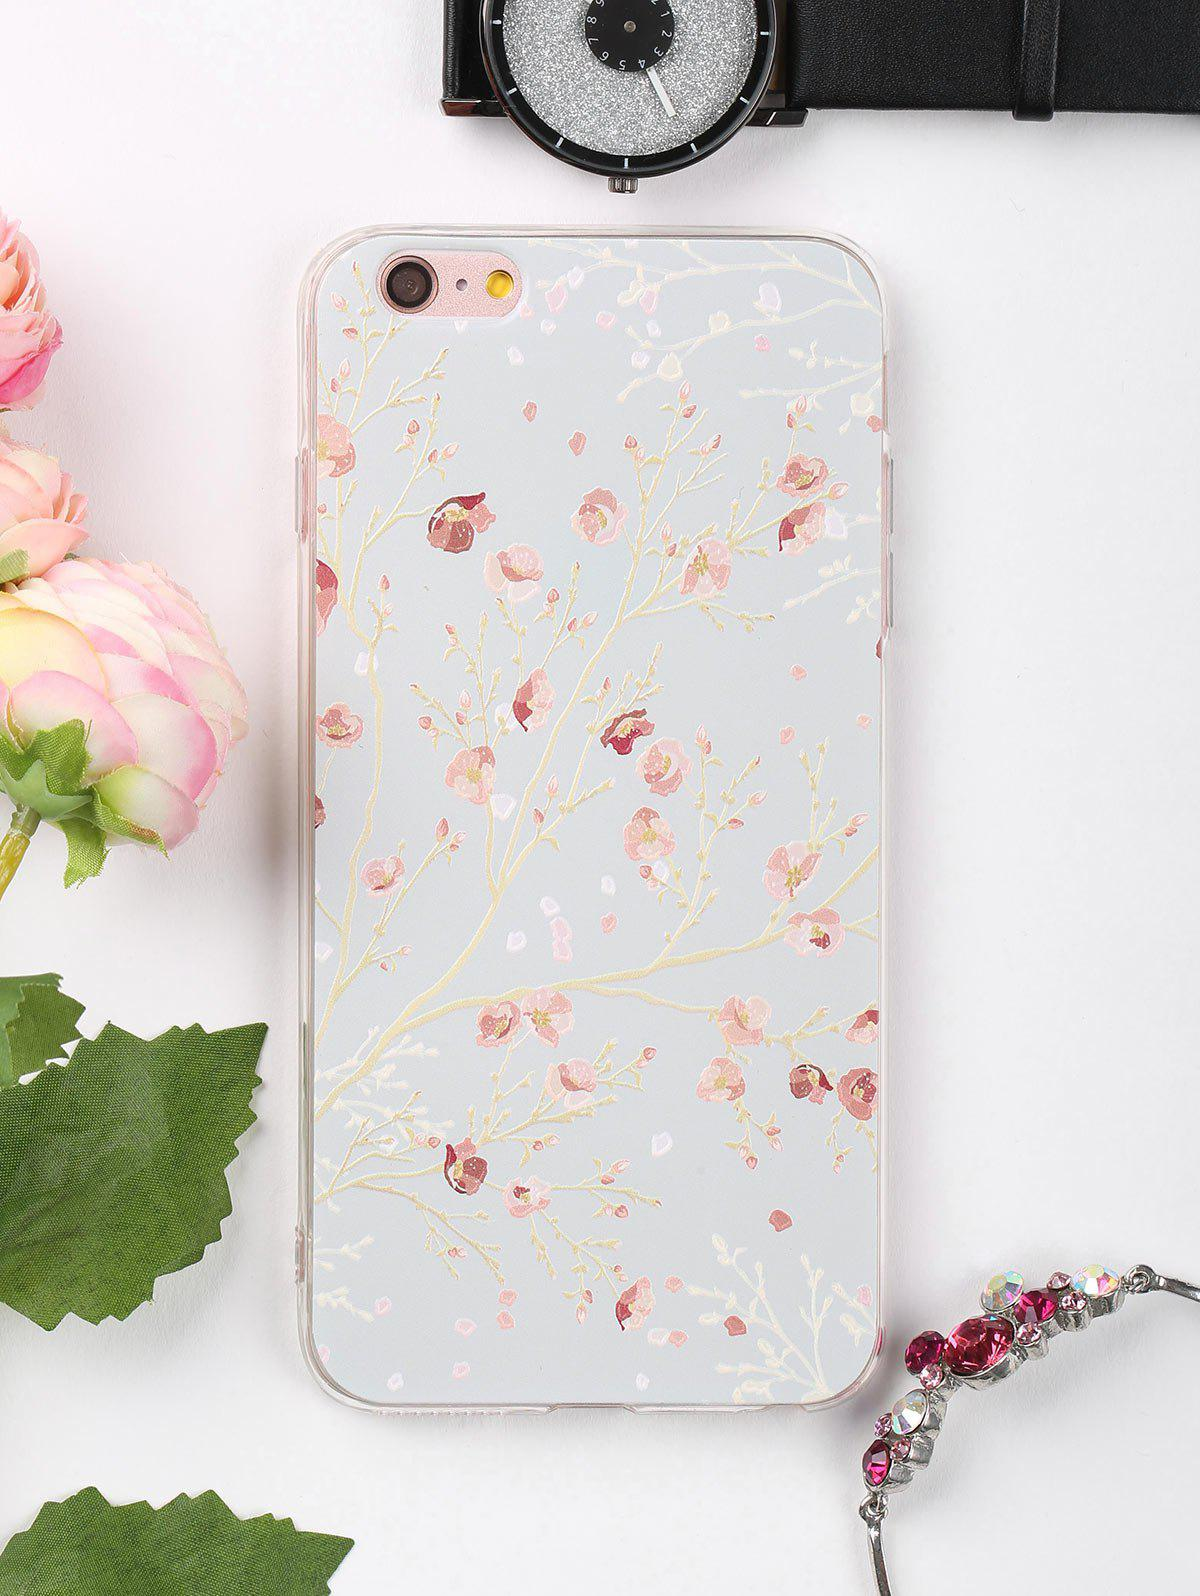 Branch Floral Pattern Protective Phone Case For Iphone - COLORMIX FOR IPHONE 6 PLUS / 6S PLUS